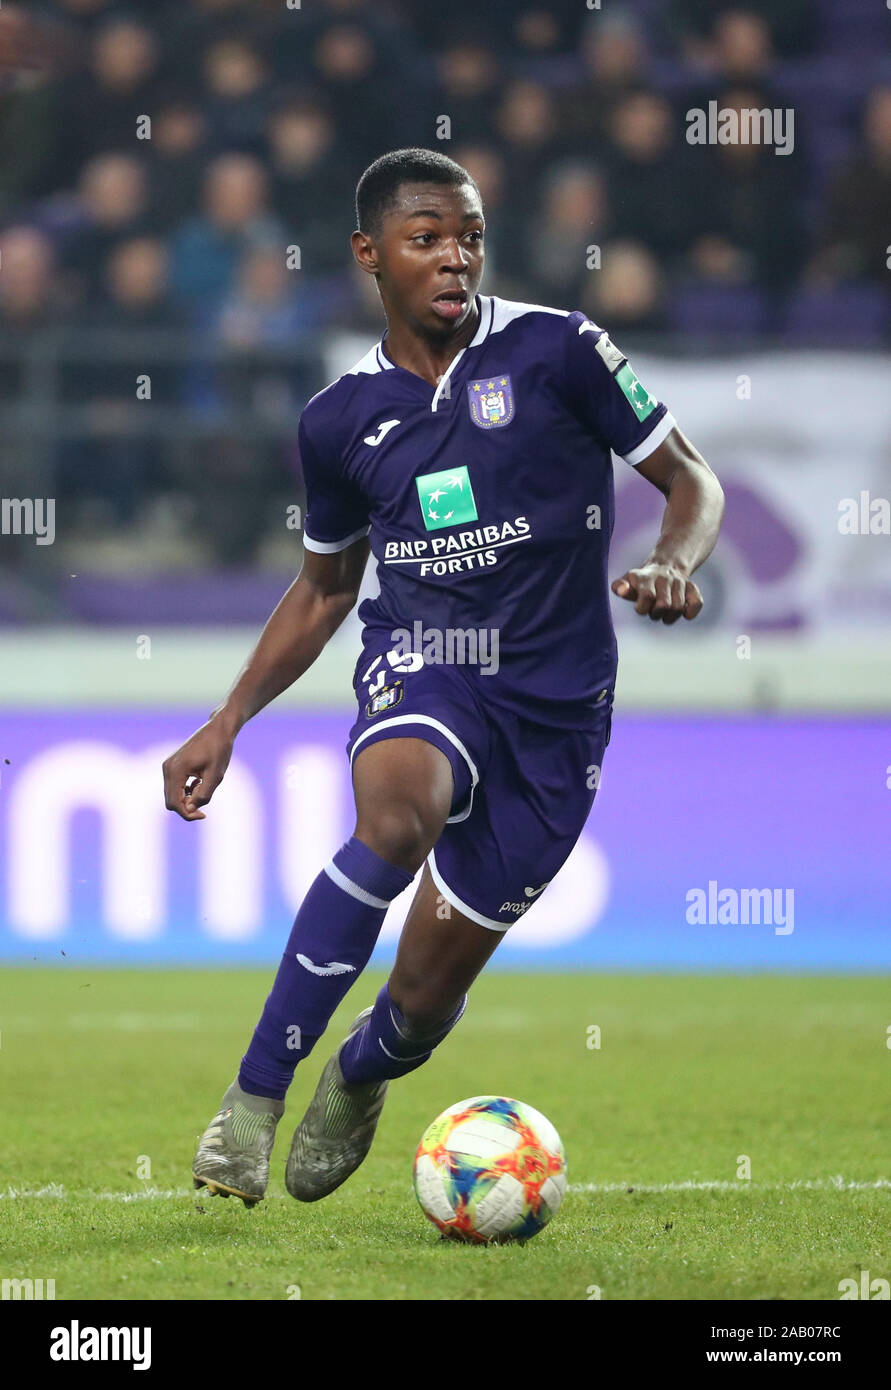 BRUSSELS, BELGIUM - NOVEMBER 24: Marco Kana of Anderlecht in action during  the Jupiler Pro League match day 16 between RSC Anderlecht and KV Kortrijk  on November 24, 2019 in Brussels, Belgium. (